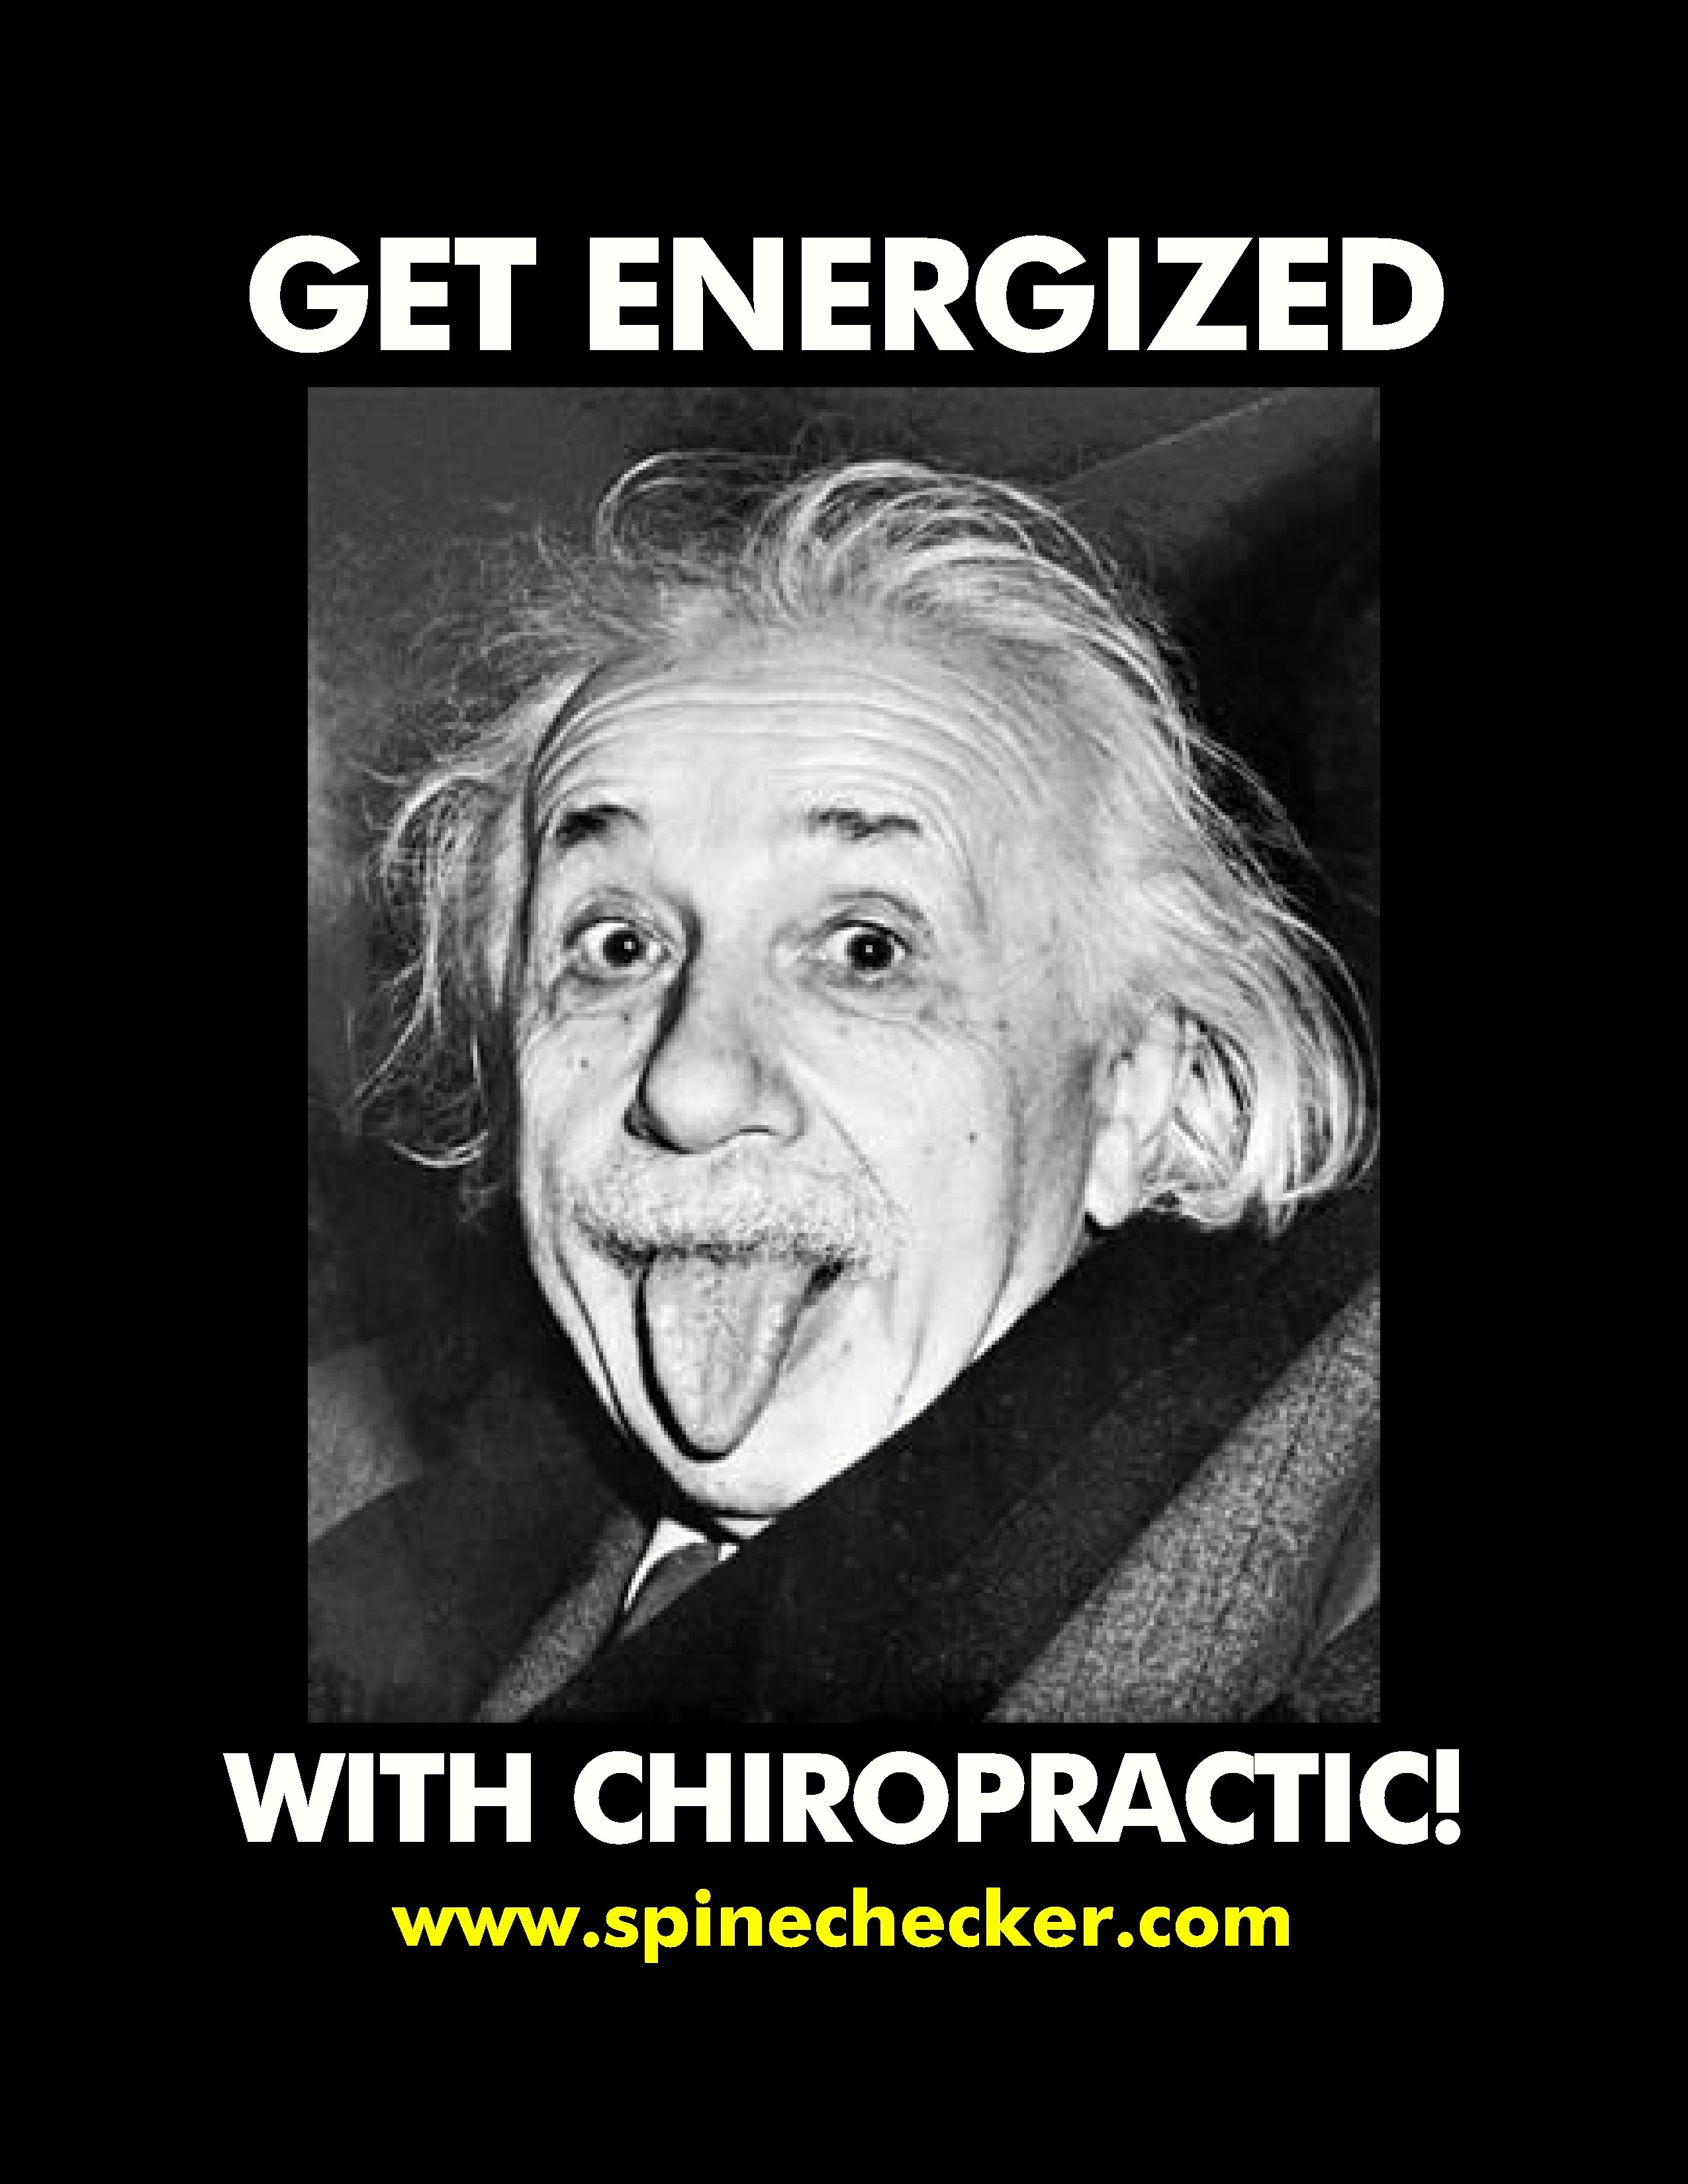 Get Energized!